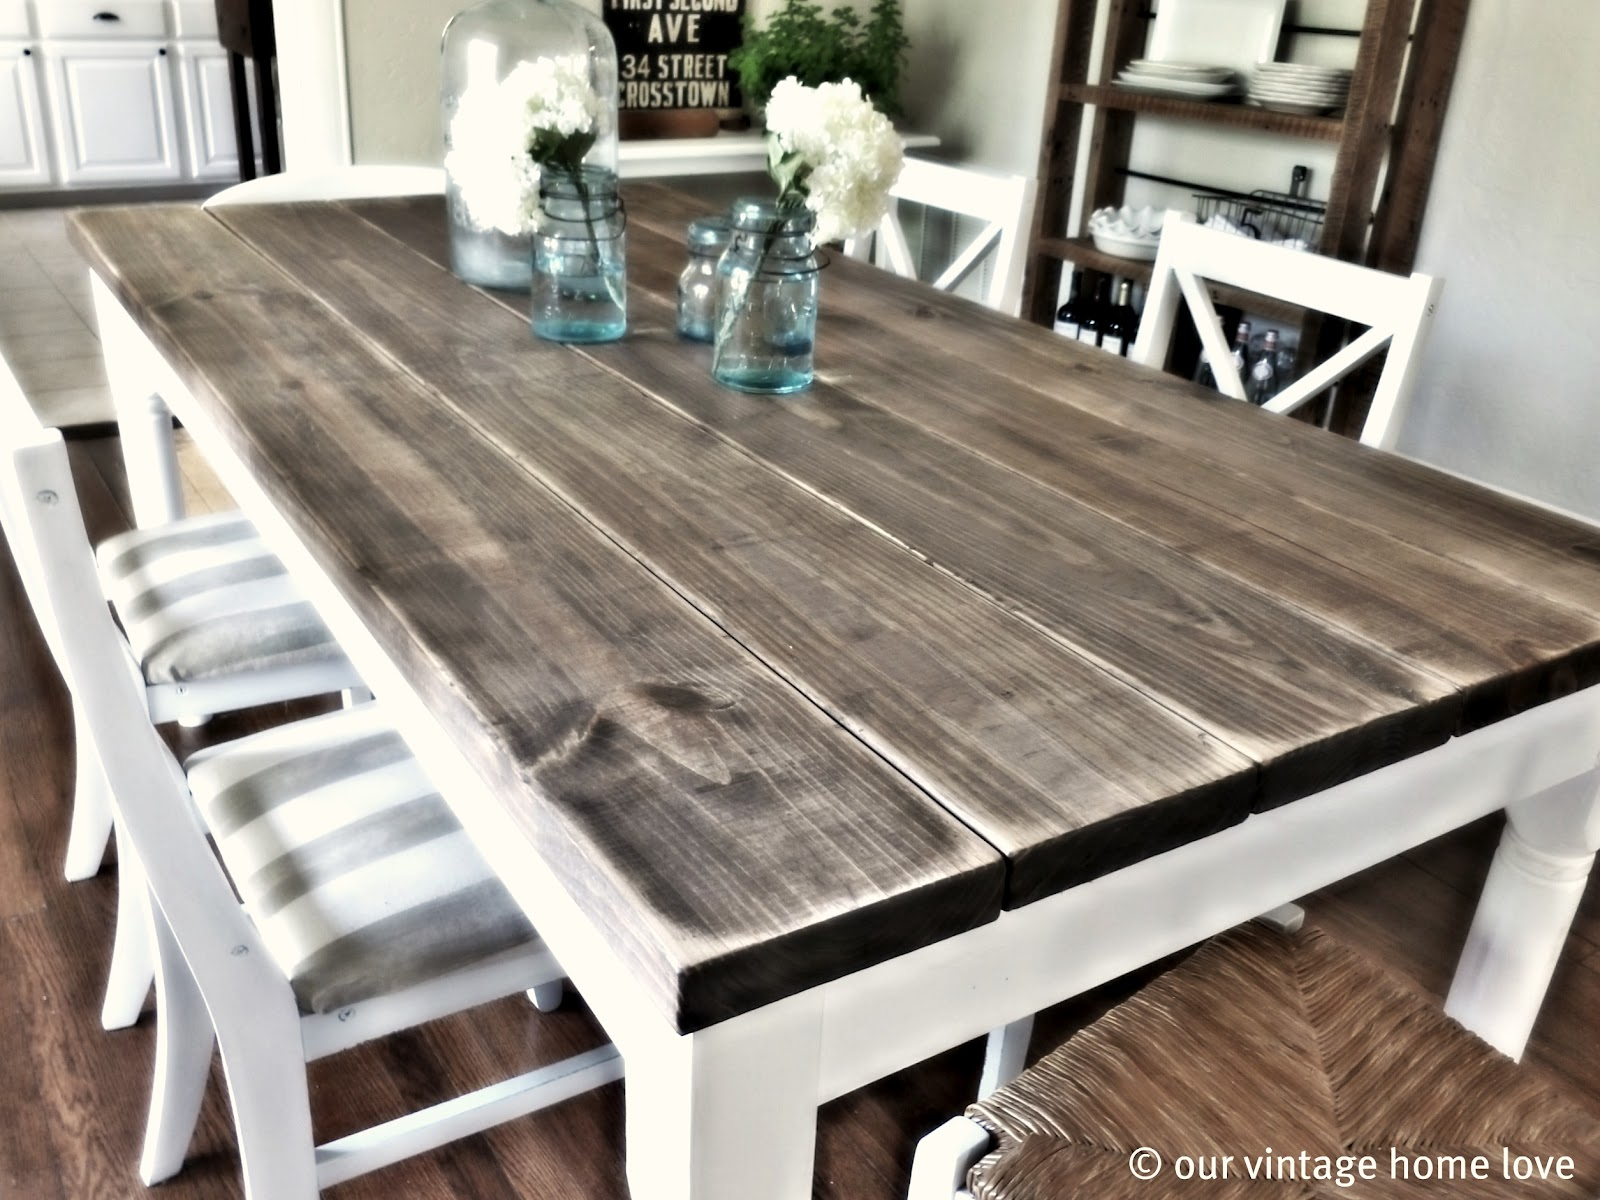 Dining Room Table Tutorial vintage home love